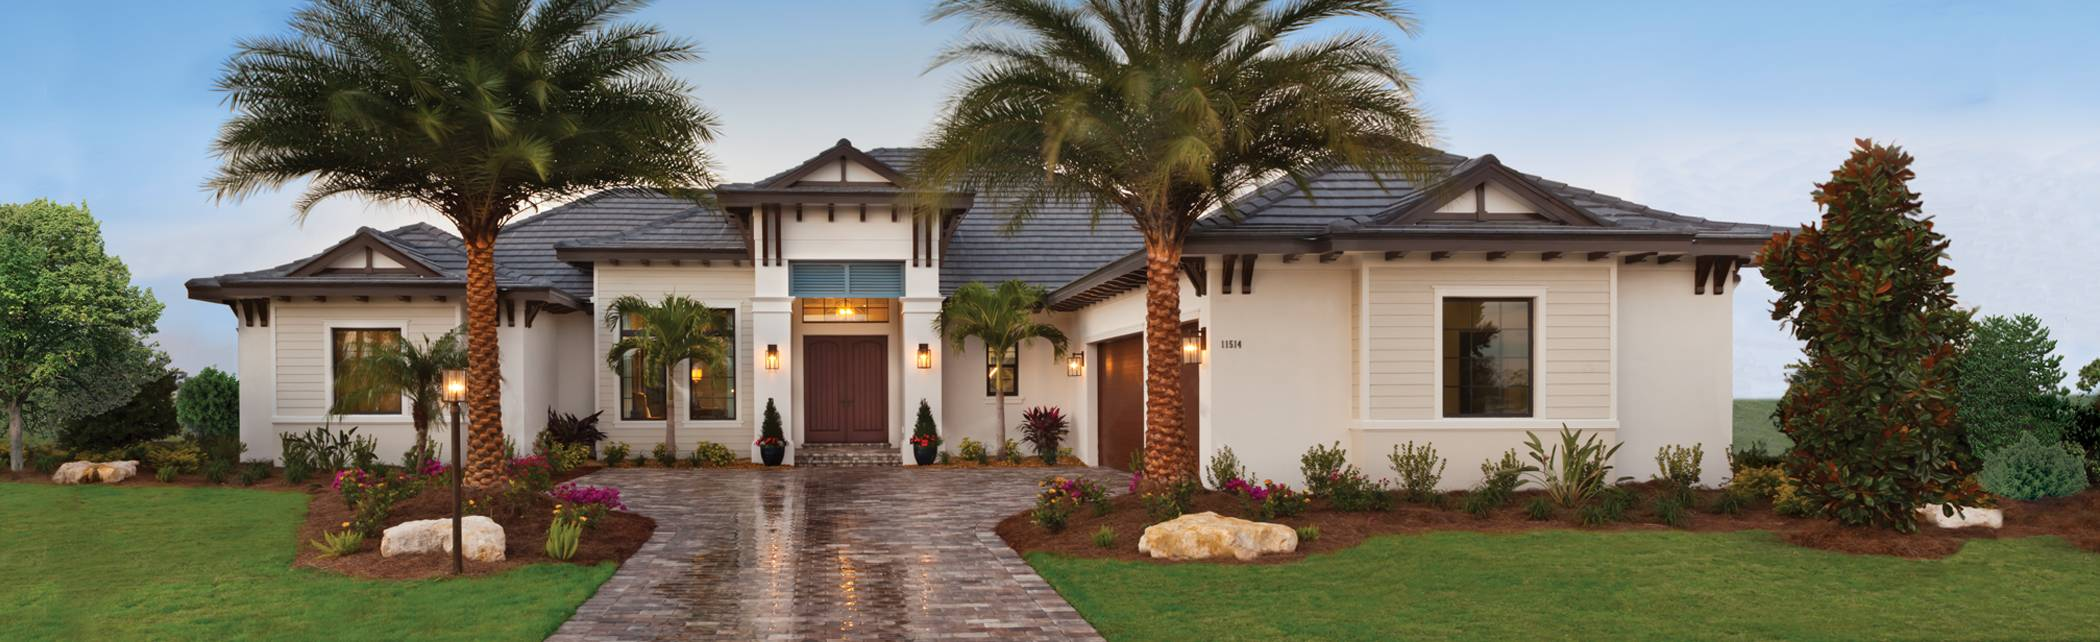 The Islands on the Manatee River New Home Community Parrish Florida